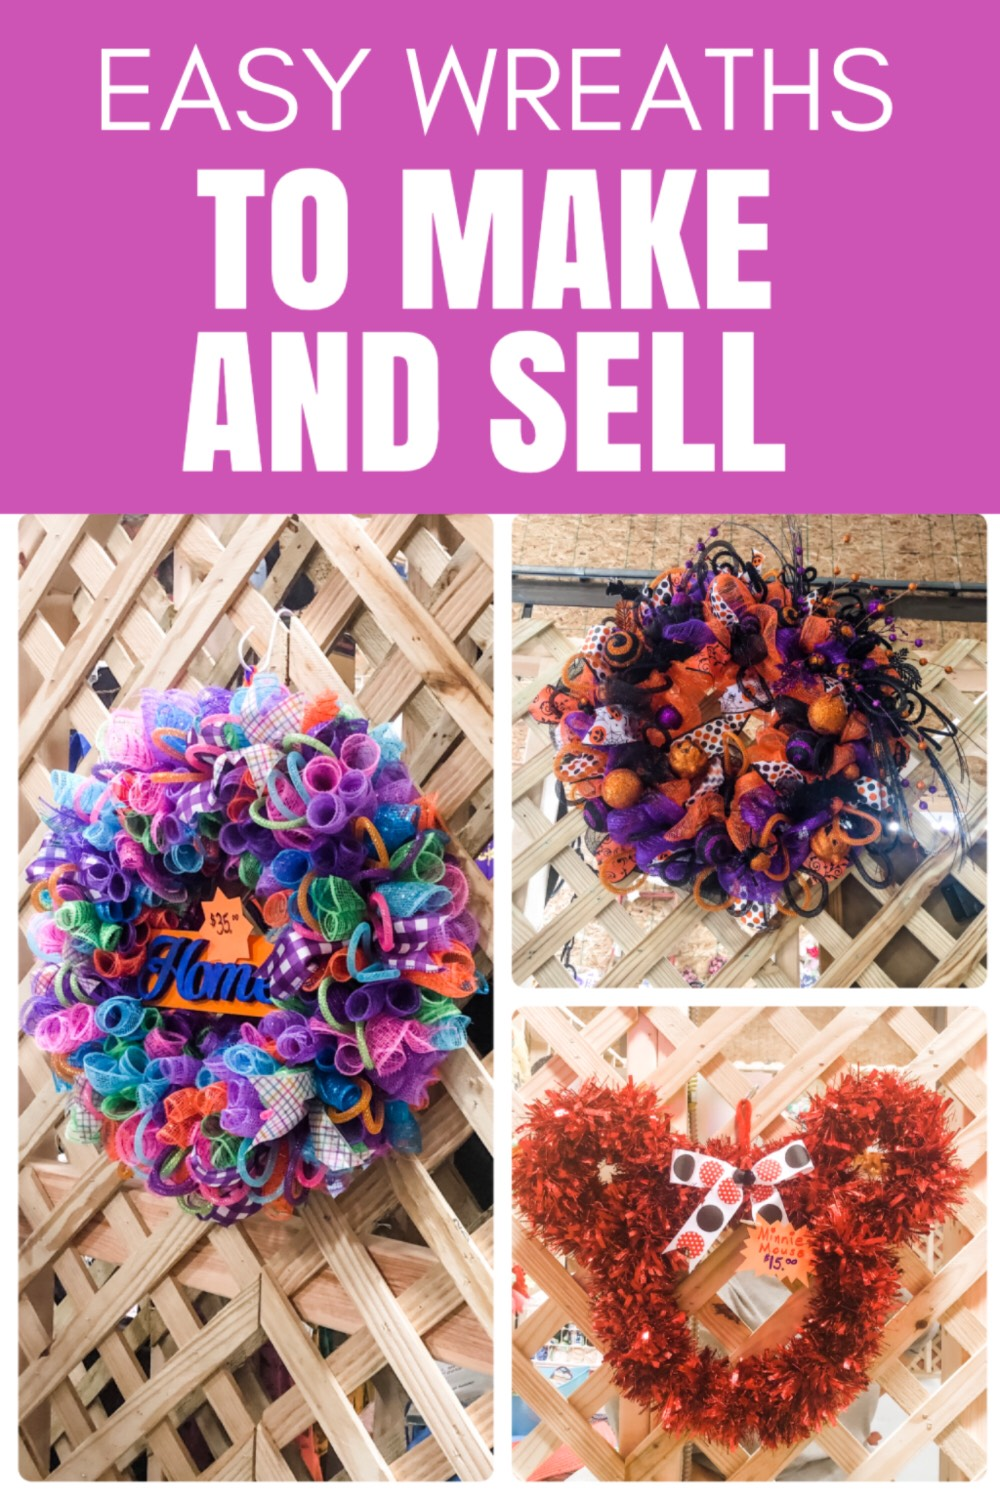 Here are some beautiful WREATHS you can sell for extra cash at flea markets, craft fairs, on Etsy or Amazon Handmade!